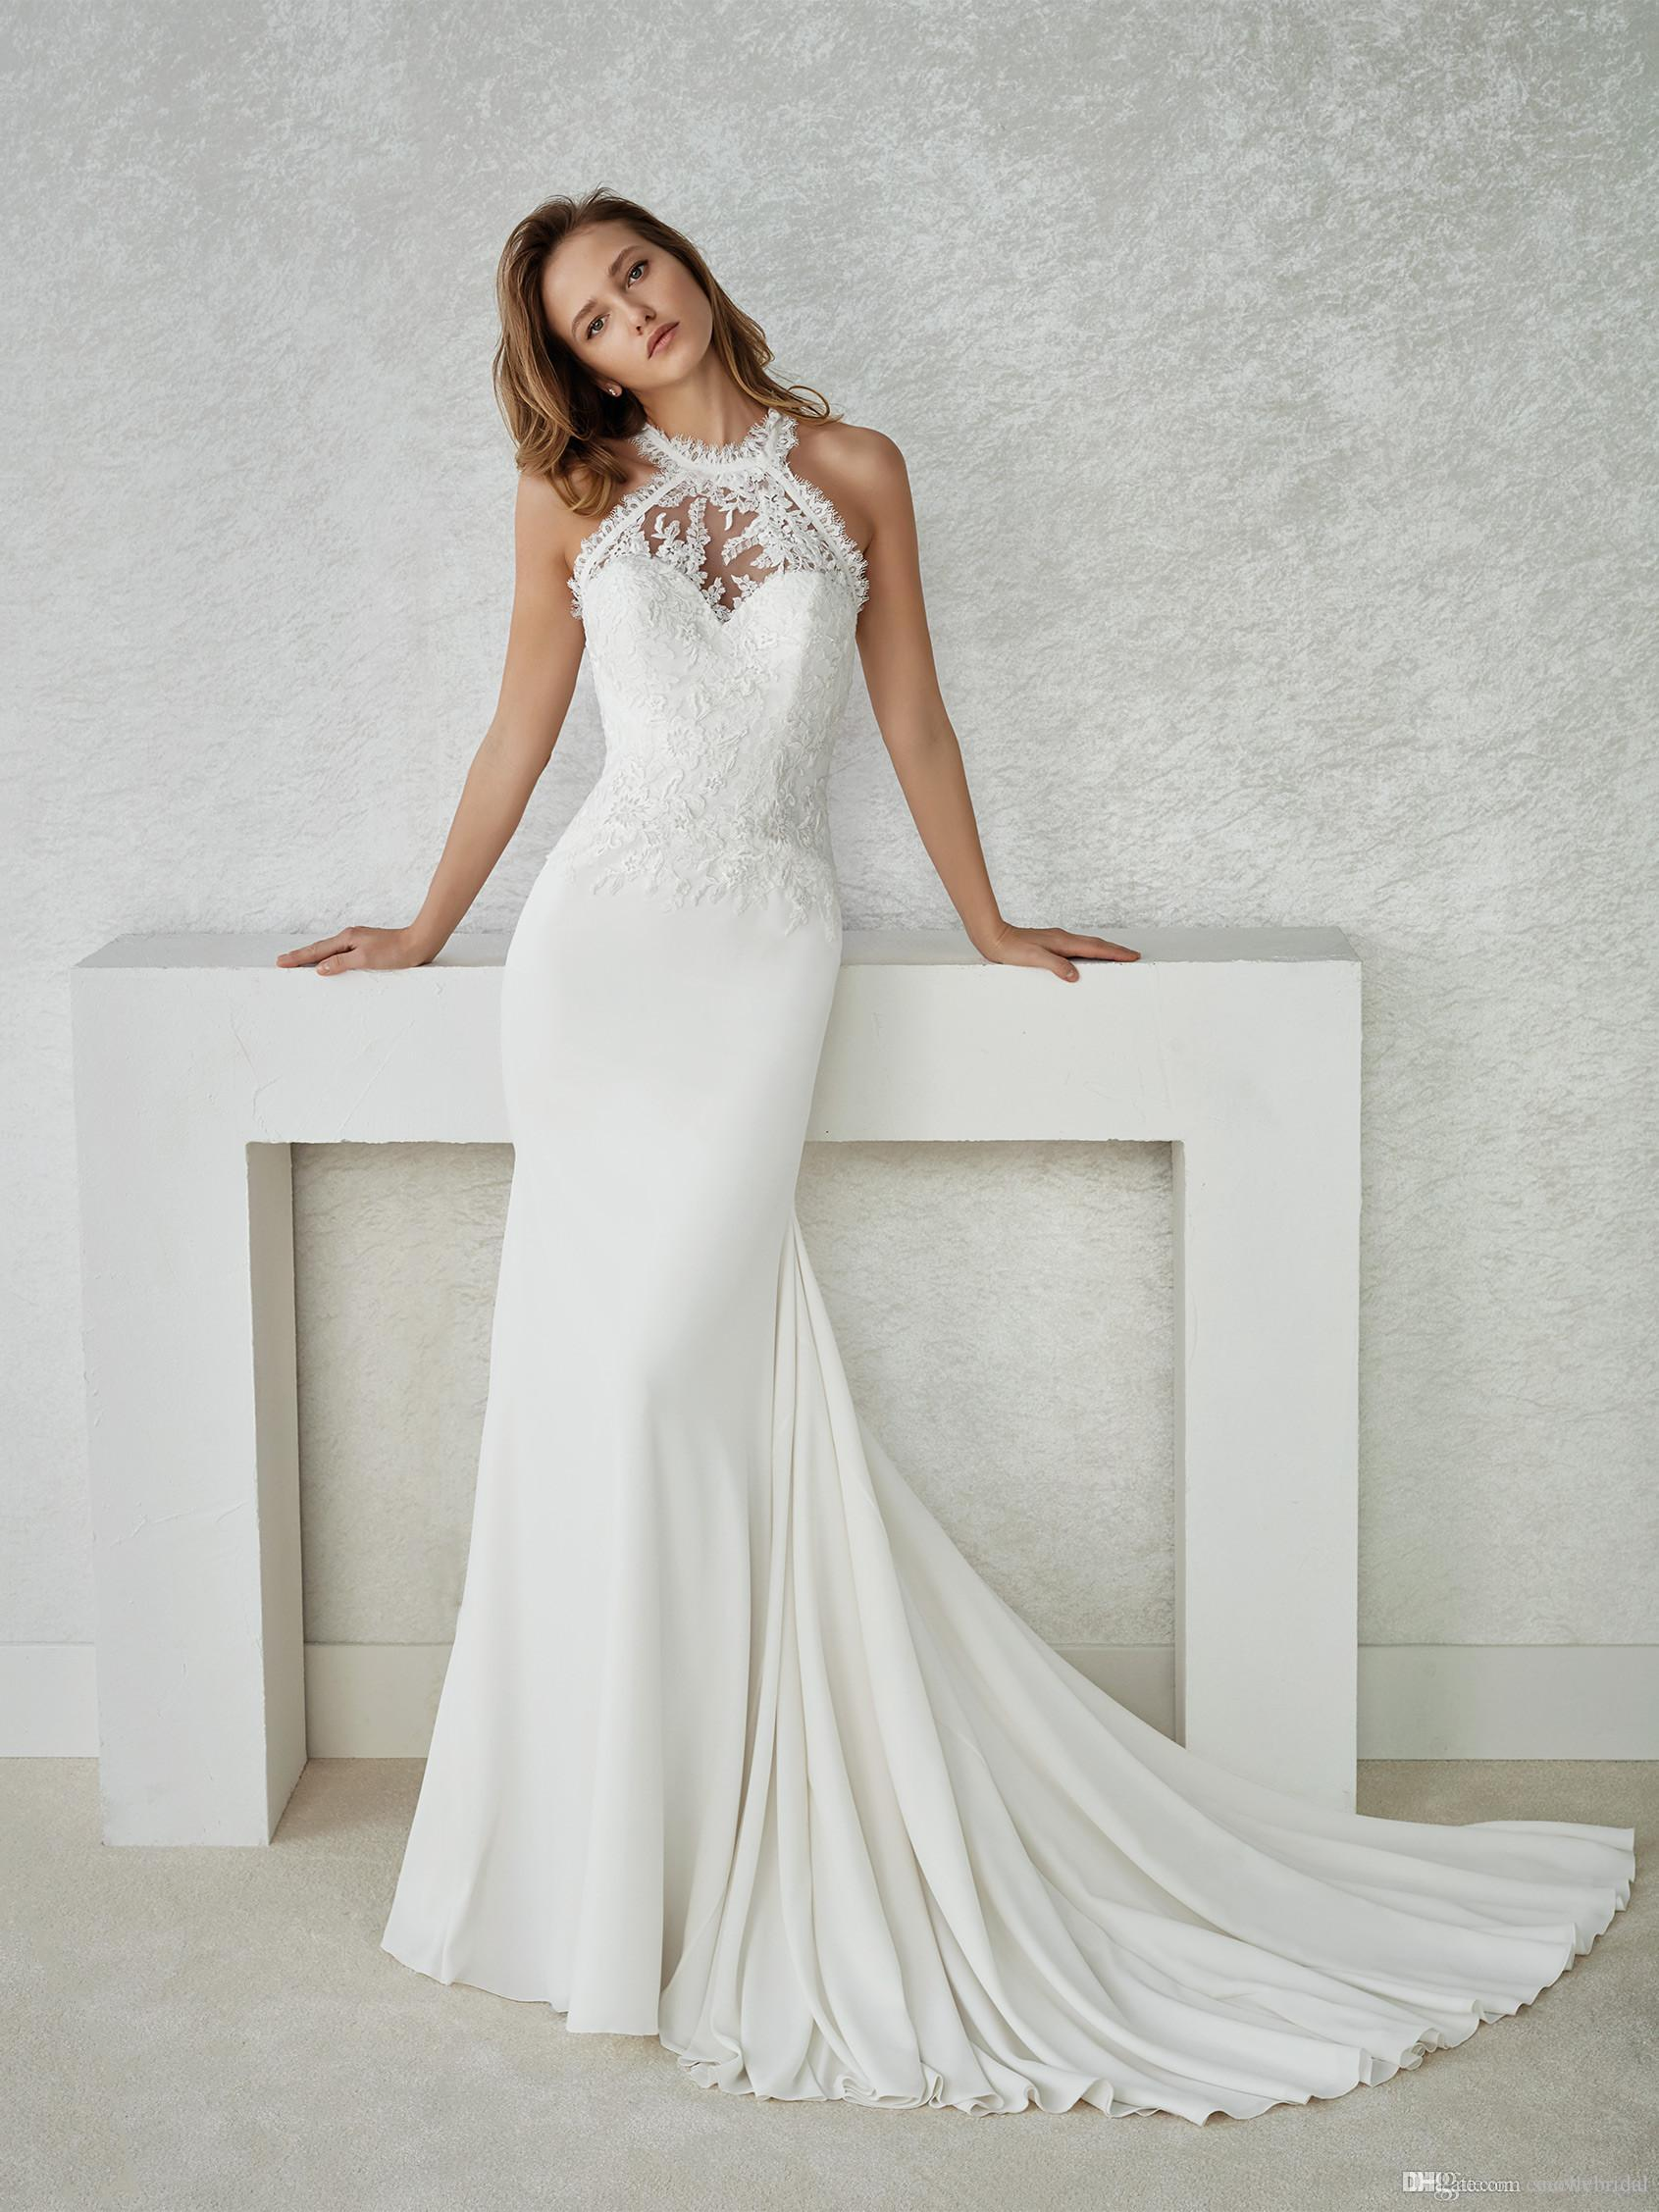 2019 Halter Mermaid Long Wedding Dress Sleeveless Buttons Back Lace Informal Reception Wedding Gowns Beach Bridal Dress Sale